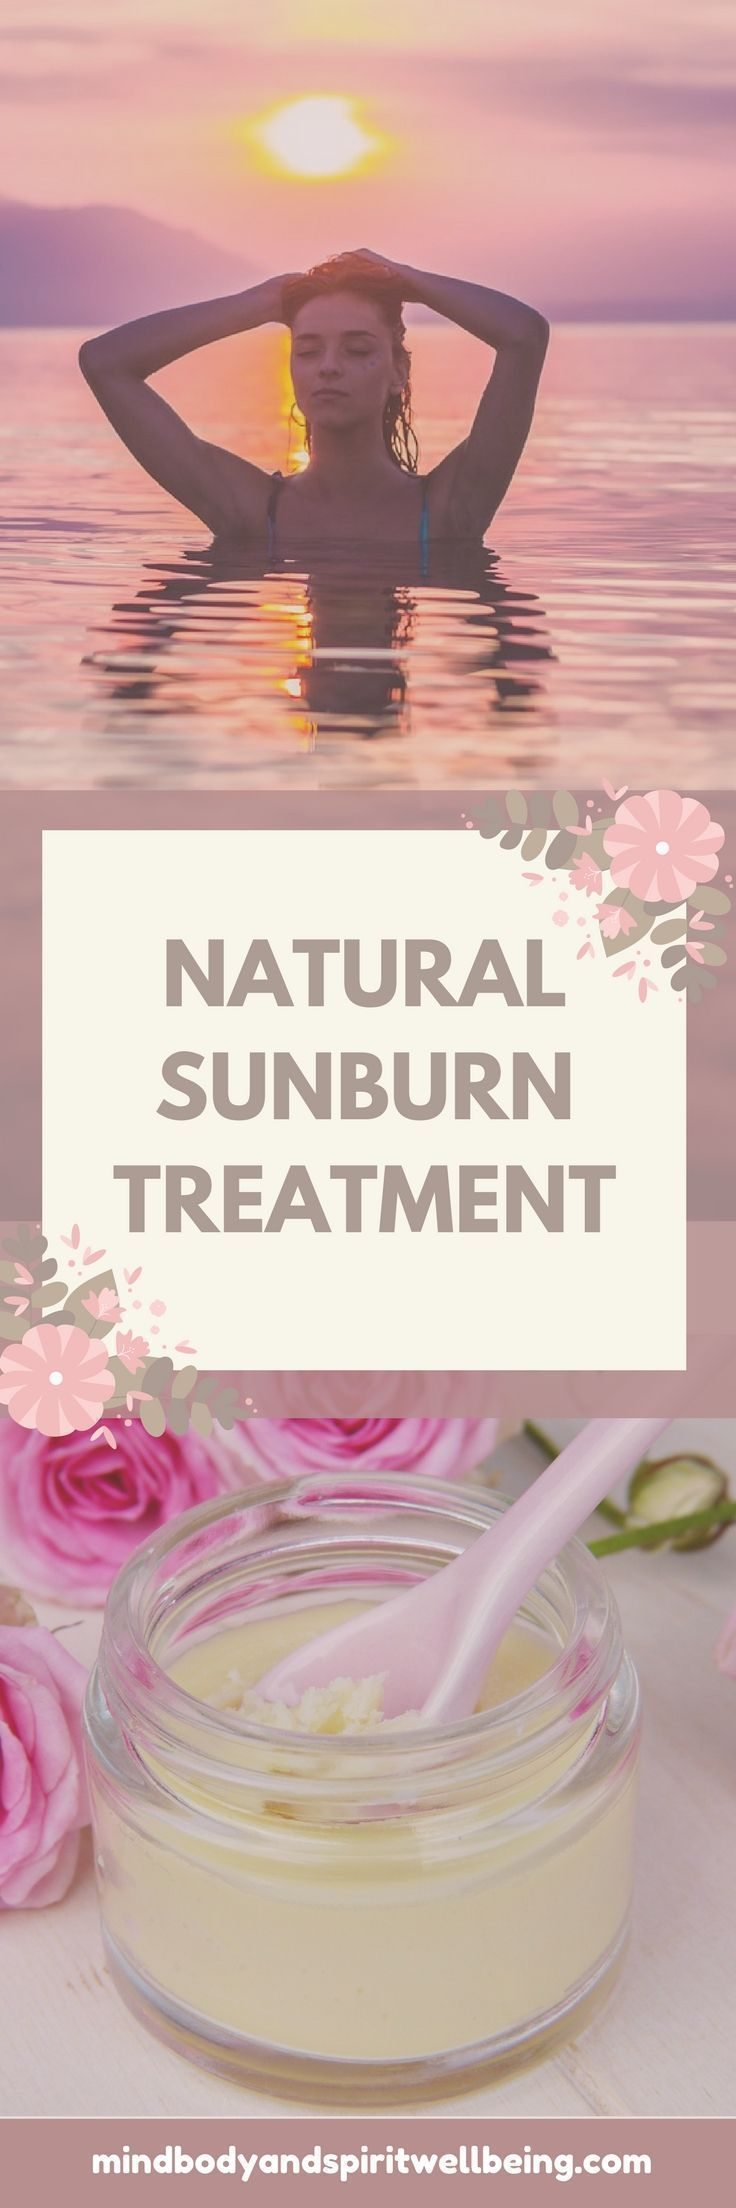 natural sunburn treatment, DIY beauty recipes, homemade skin care, natural cosmetics, hair care recipes, DIY body care, body lotion, body butter, face masks, acne remedies, hair loss remedies, fast hair growth,mature skin, oily skin,whitening treatments,Anti-cellulite treatments,Nail strengthening,toothpaste and mouthwash recipes,Dandruff healing,Natural remedies for acne, pimples, blackheads,, pimple home remedies #haircarediy #homemadefacemasksrecipes